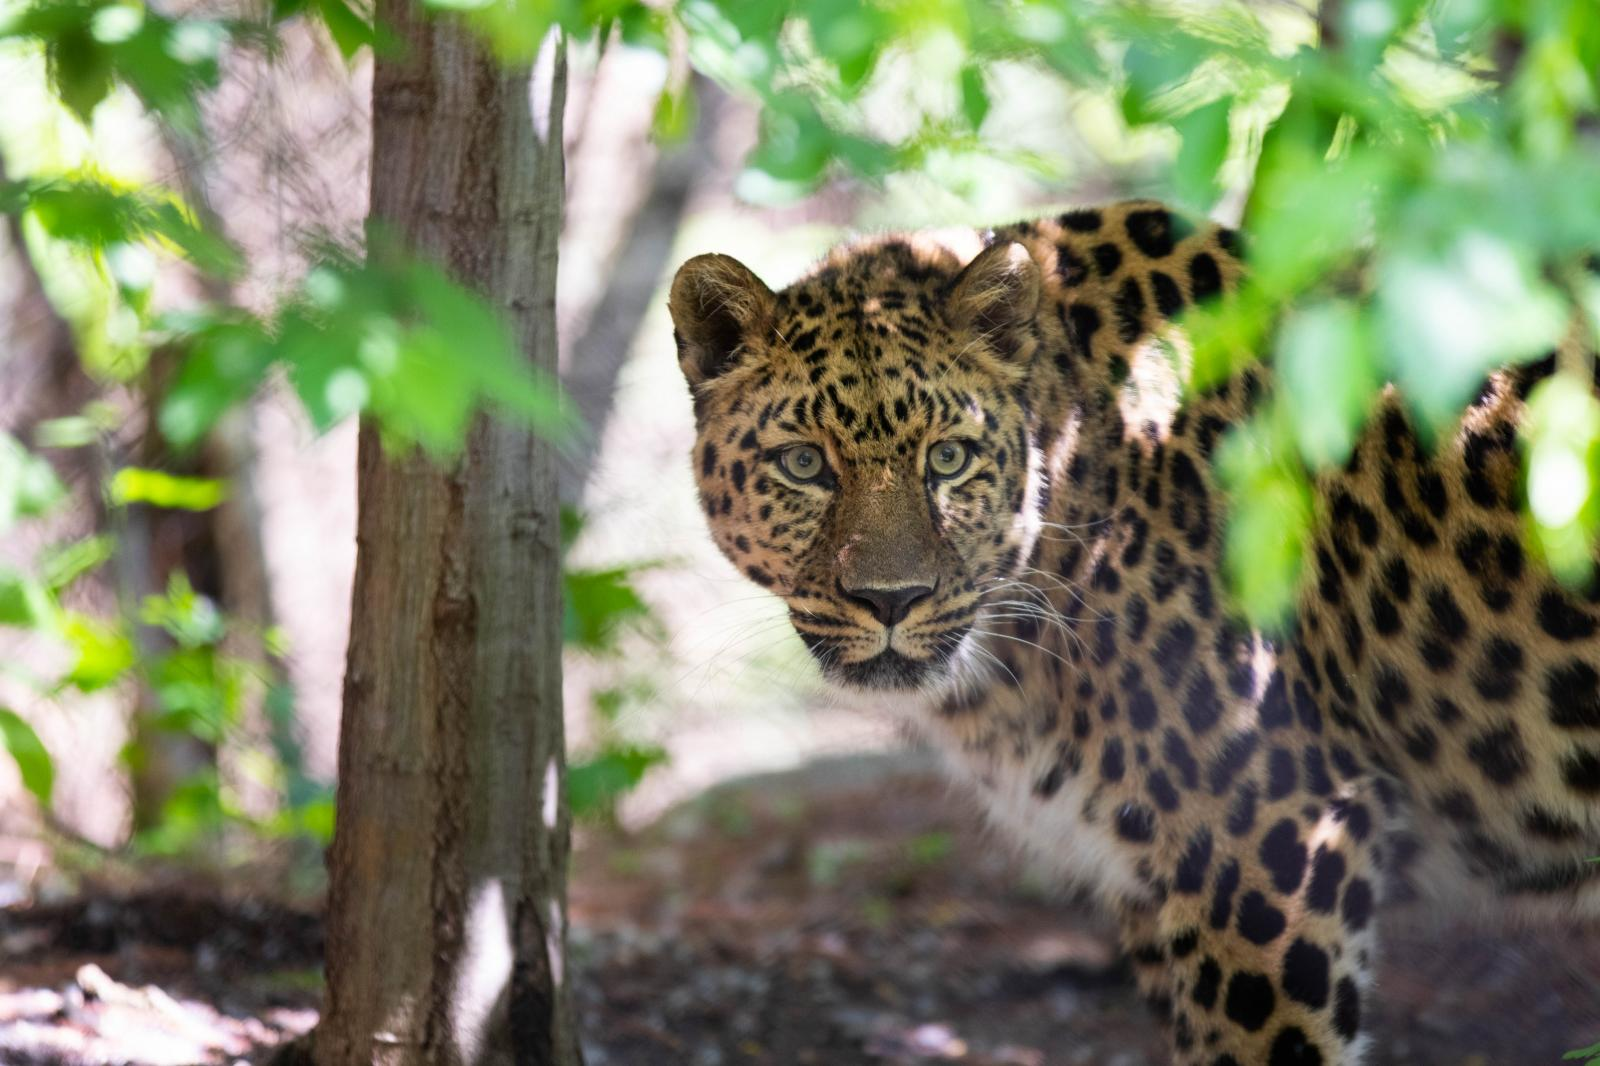 Amur Leopard in the Minnesota Zoo. Only 30 Amur leopards remain in the wild. This species is very endangered.